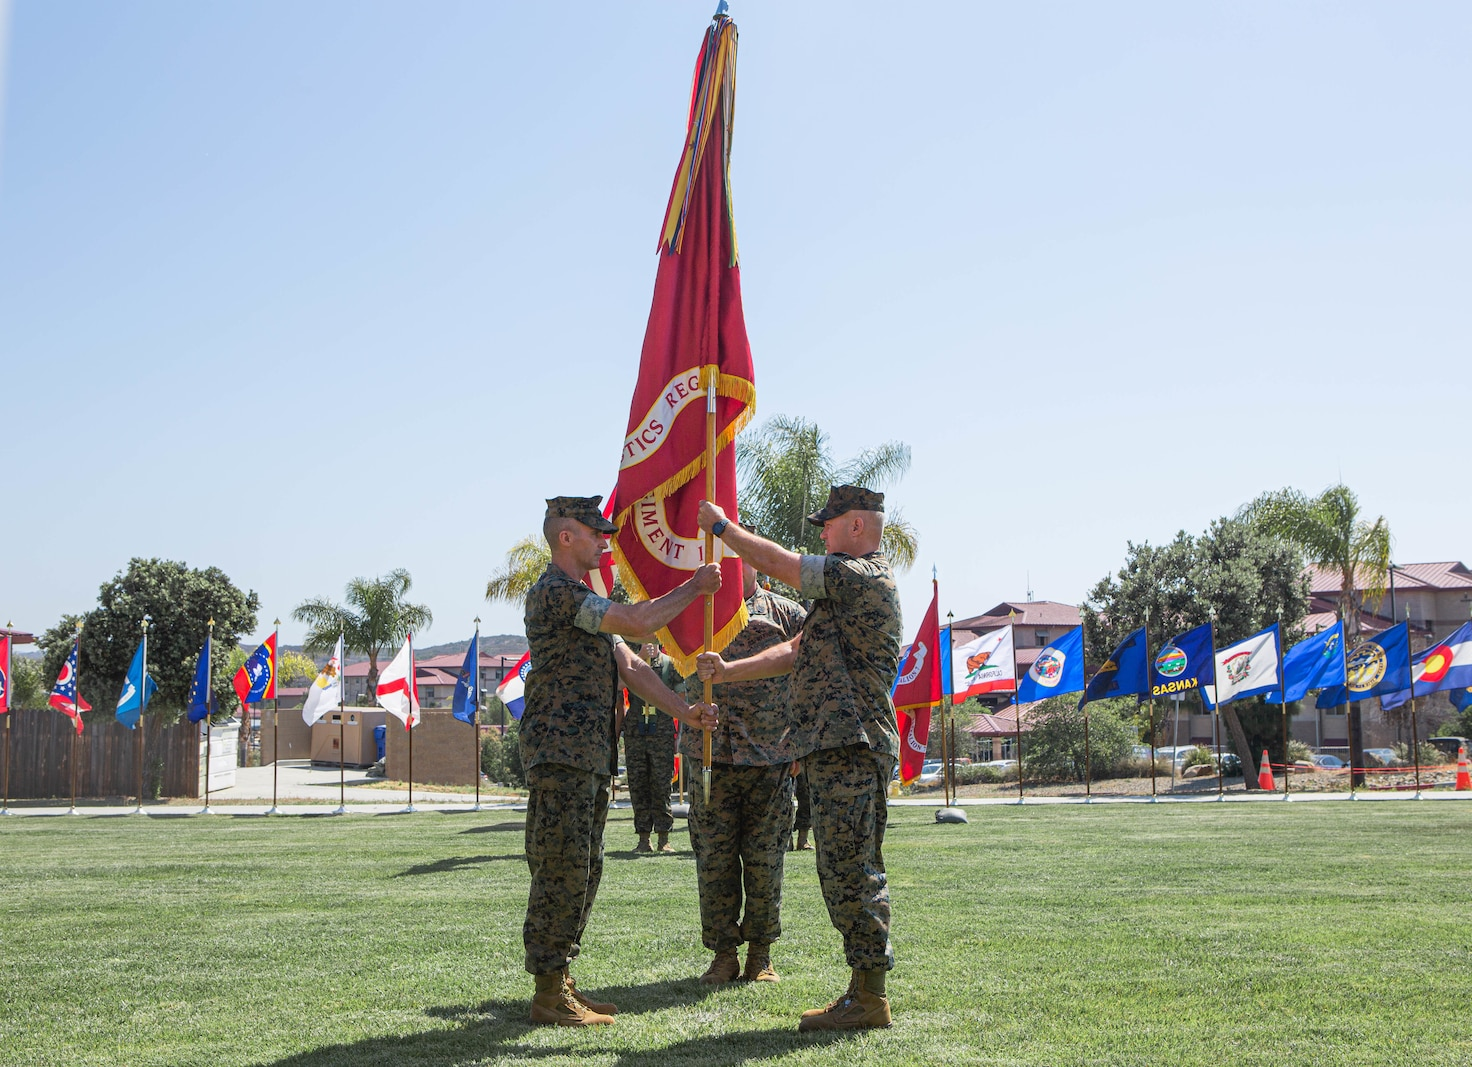 U.S. Marine Corps Col. Michael W. Stehle, outgoing commanding officer, right, Combat Logistics Regiment 1, 1st Marine Logistics Group, and incoming commanding officer Col. Ryan E. Scott, left, exchange the Regimental colors during the CLR-1 change of command ceremony.